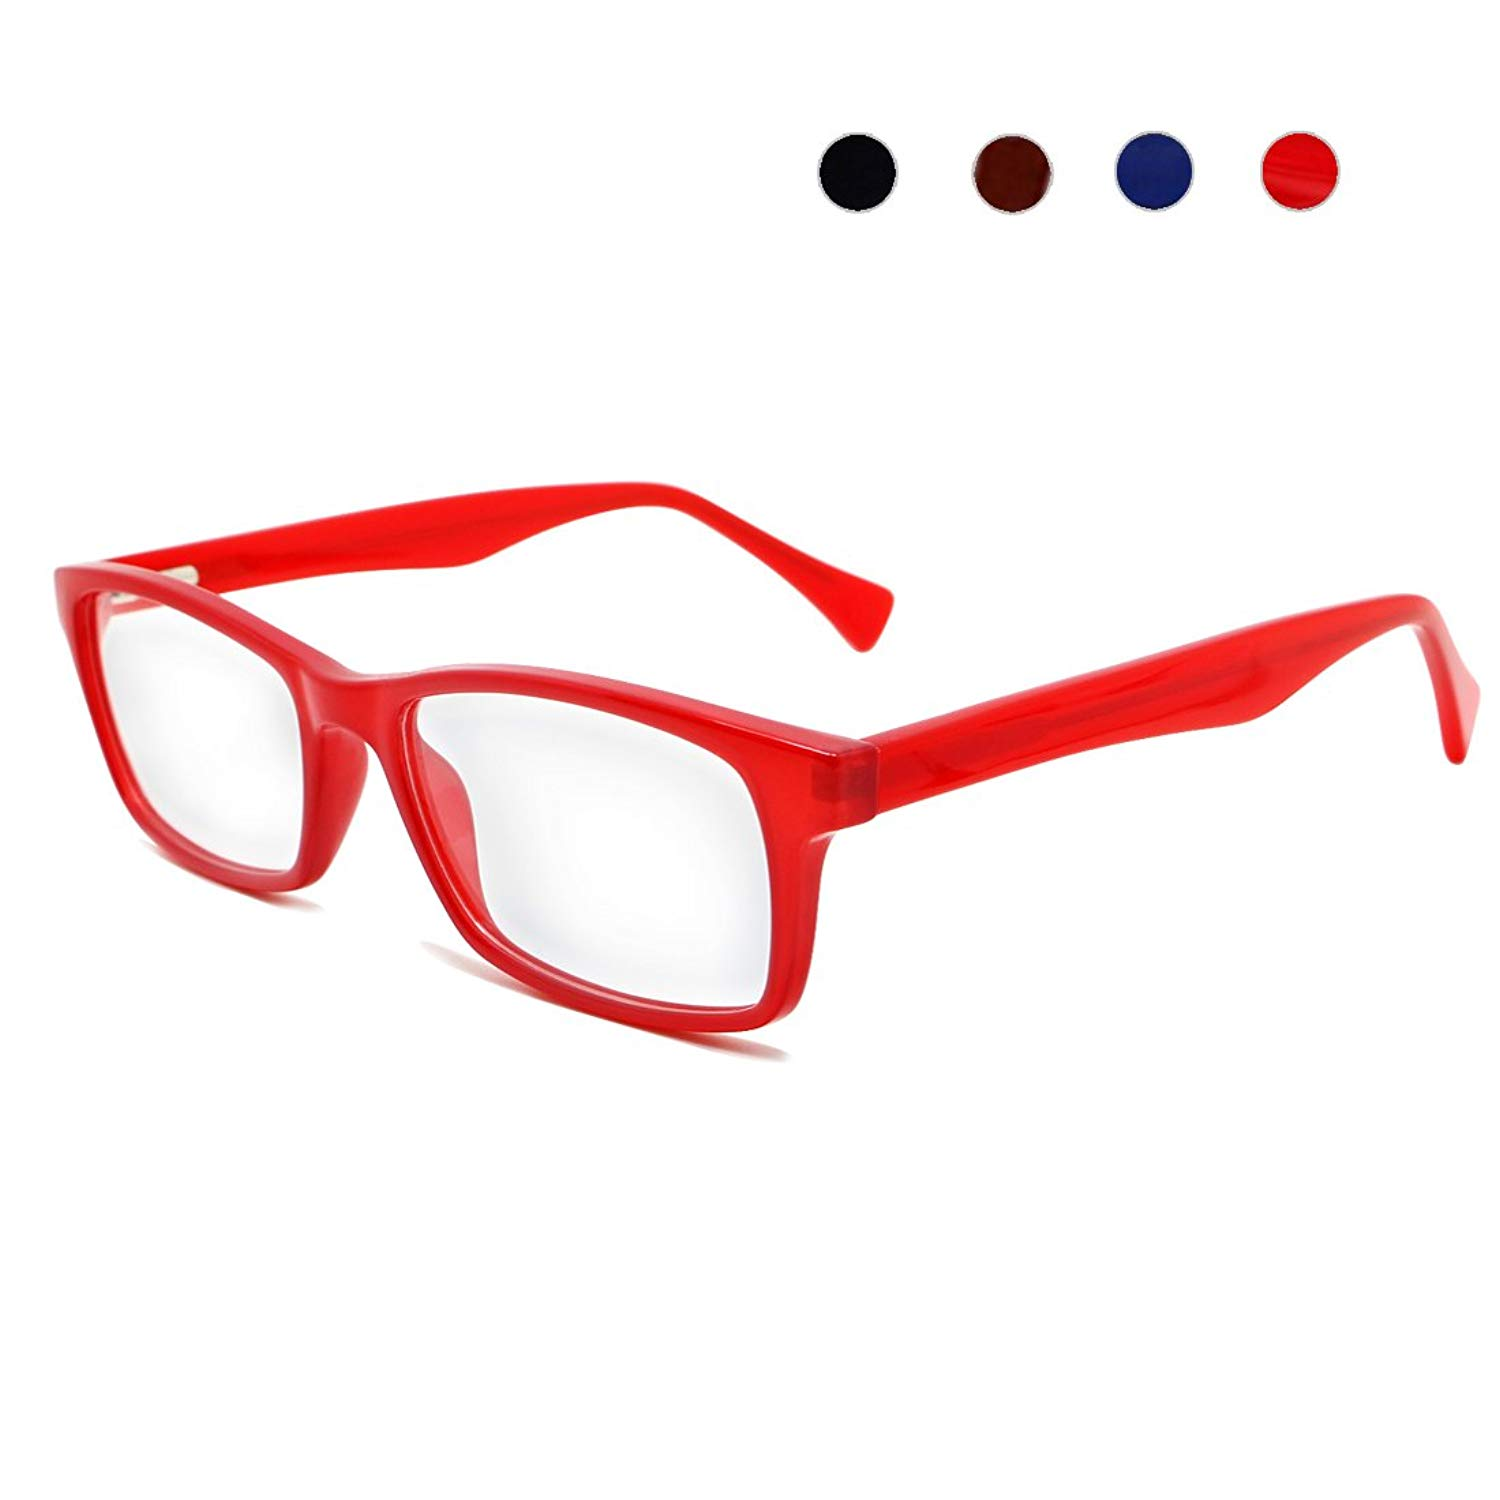 40fa8b7ad5bf Get Quotations · Coolais Unisex Eyewear Frame Women Eyeglasses Non-Prescription  Optical Eyewear Frame for Men with Clear